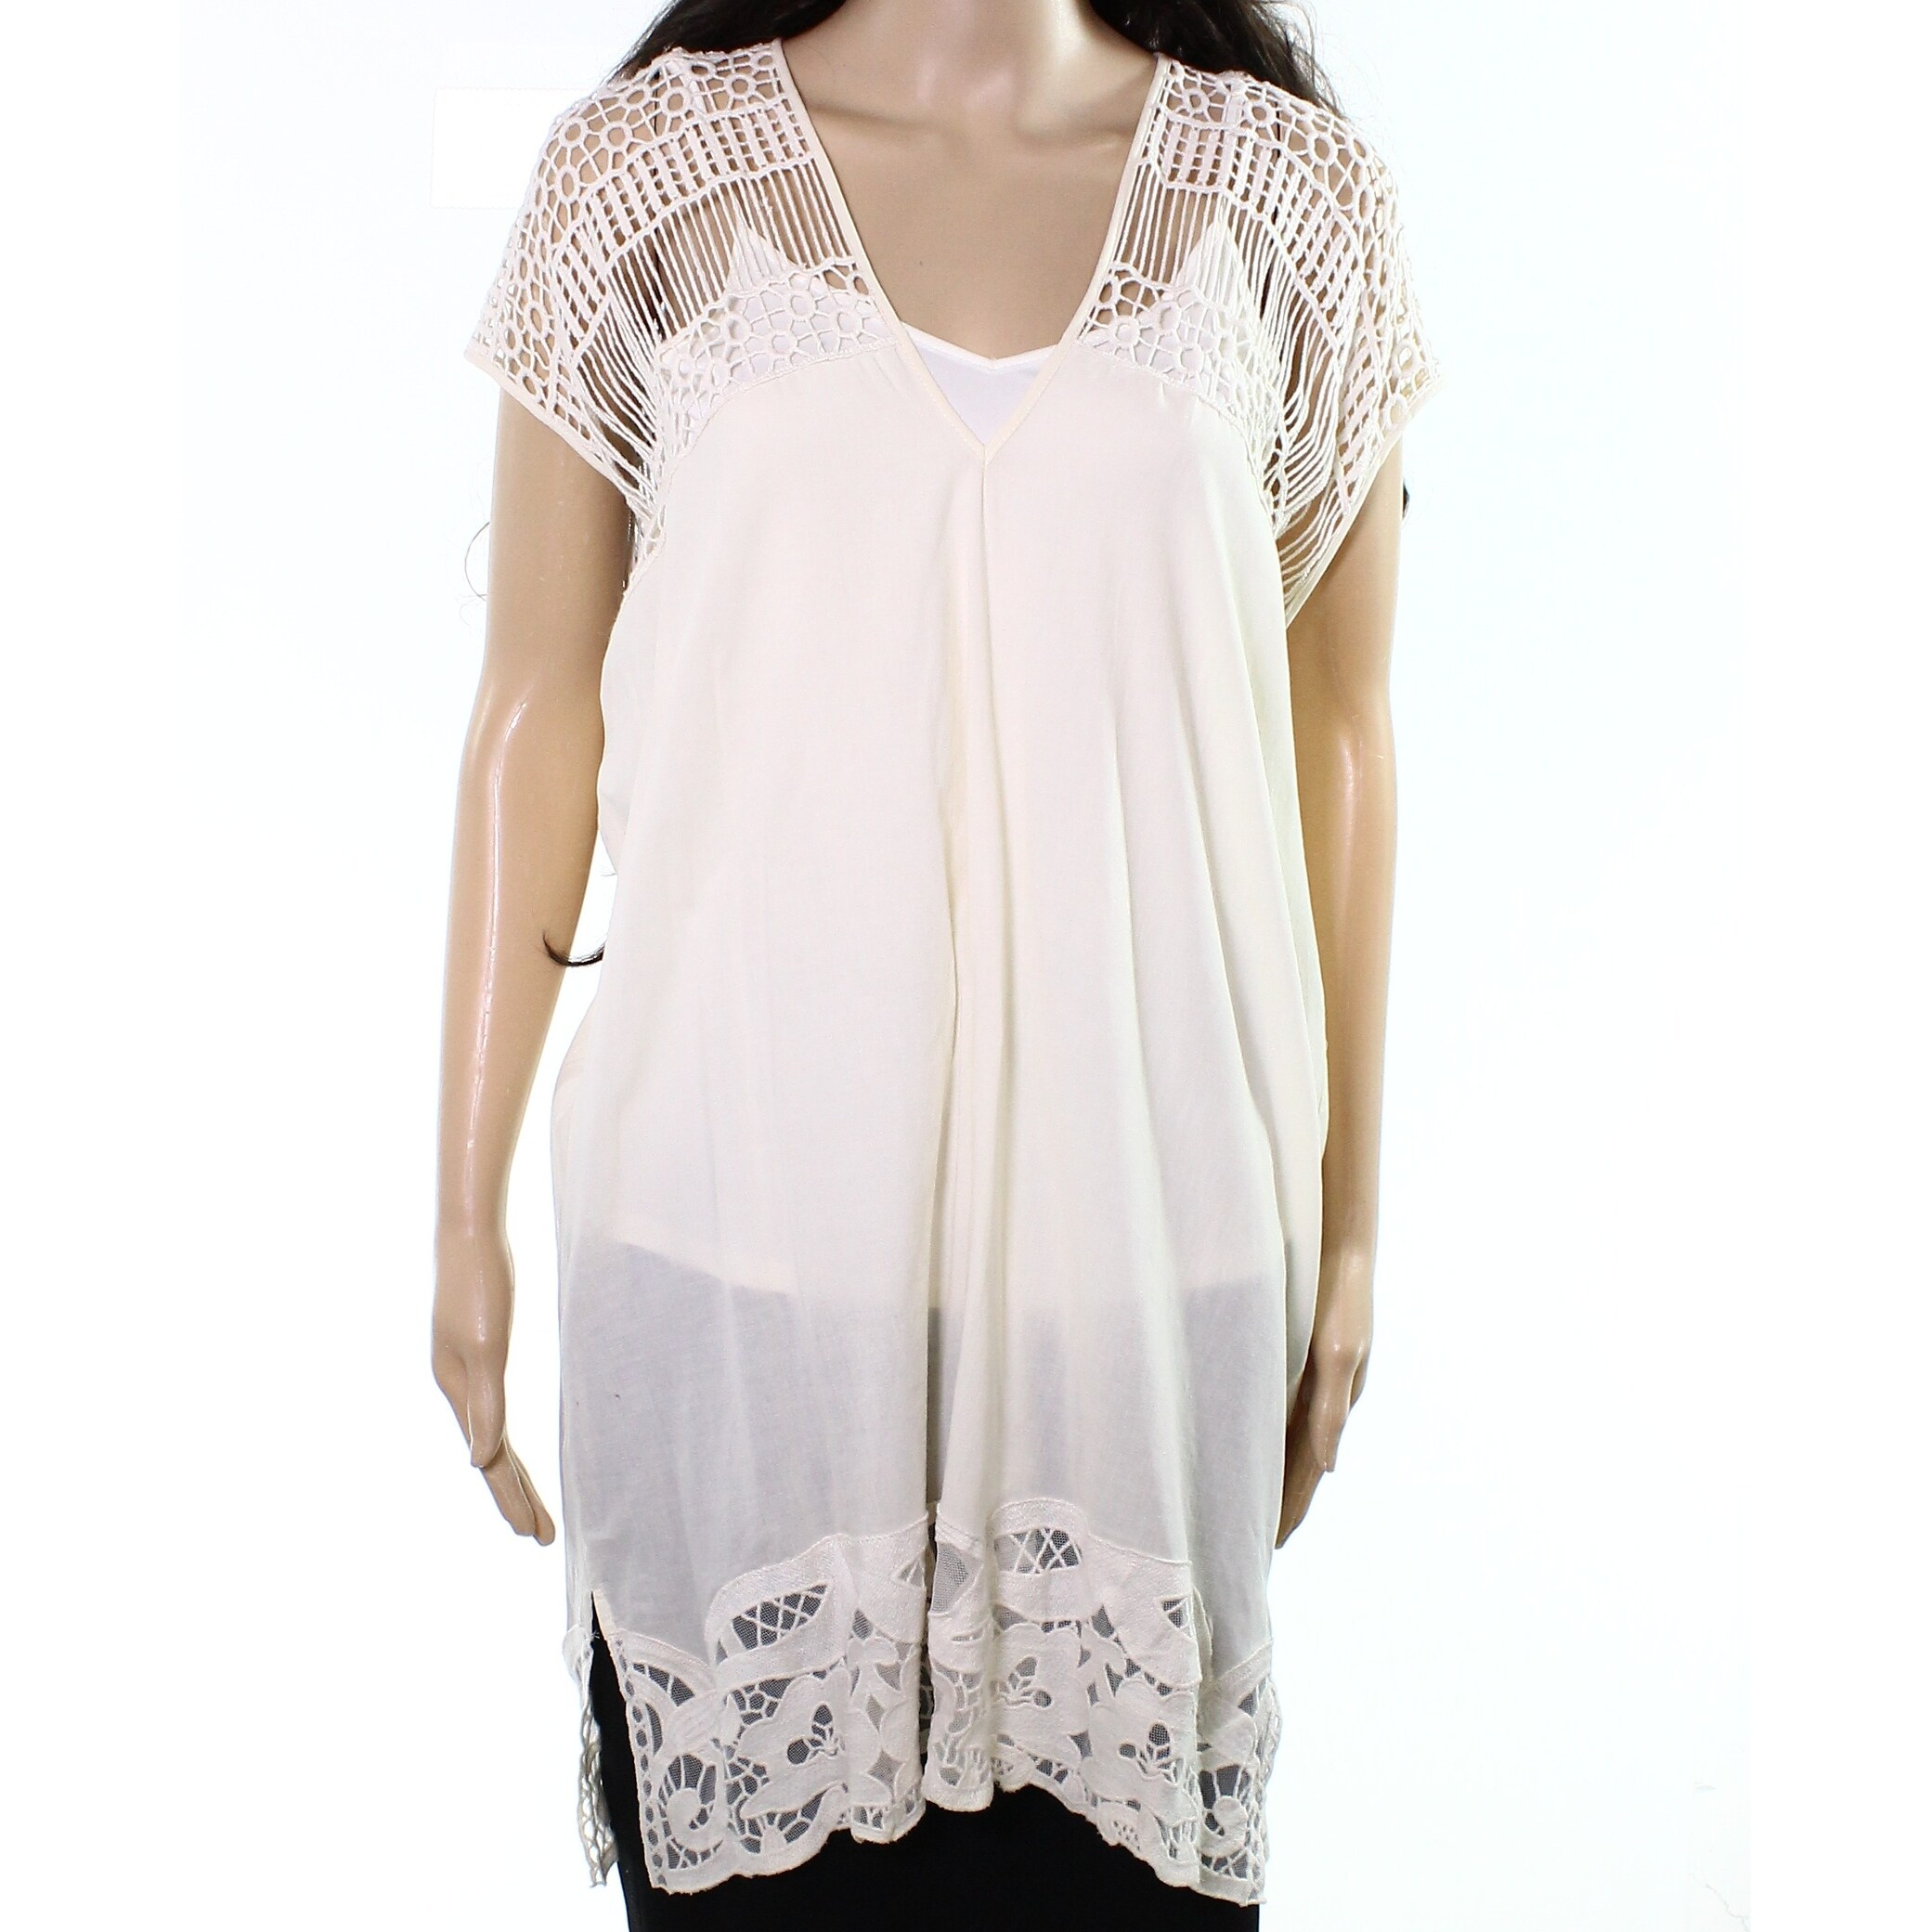 c82eba4a804148 Melrose and Market NEW White Ivory Womens Size Small S Crochet Tunic Top -  Free Shipping On Orders Over  45 - Overstock.com - 26532688